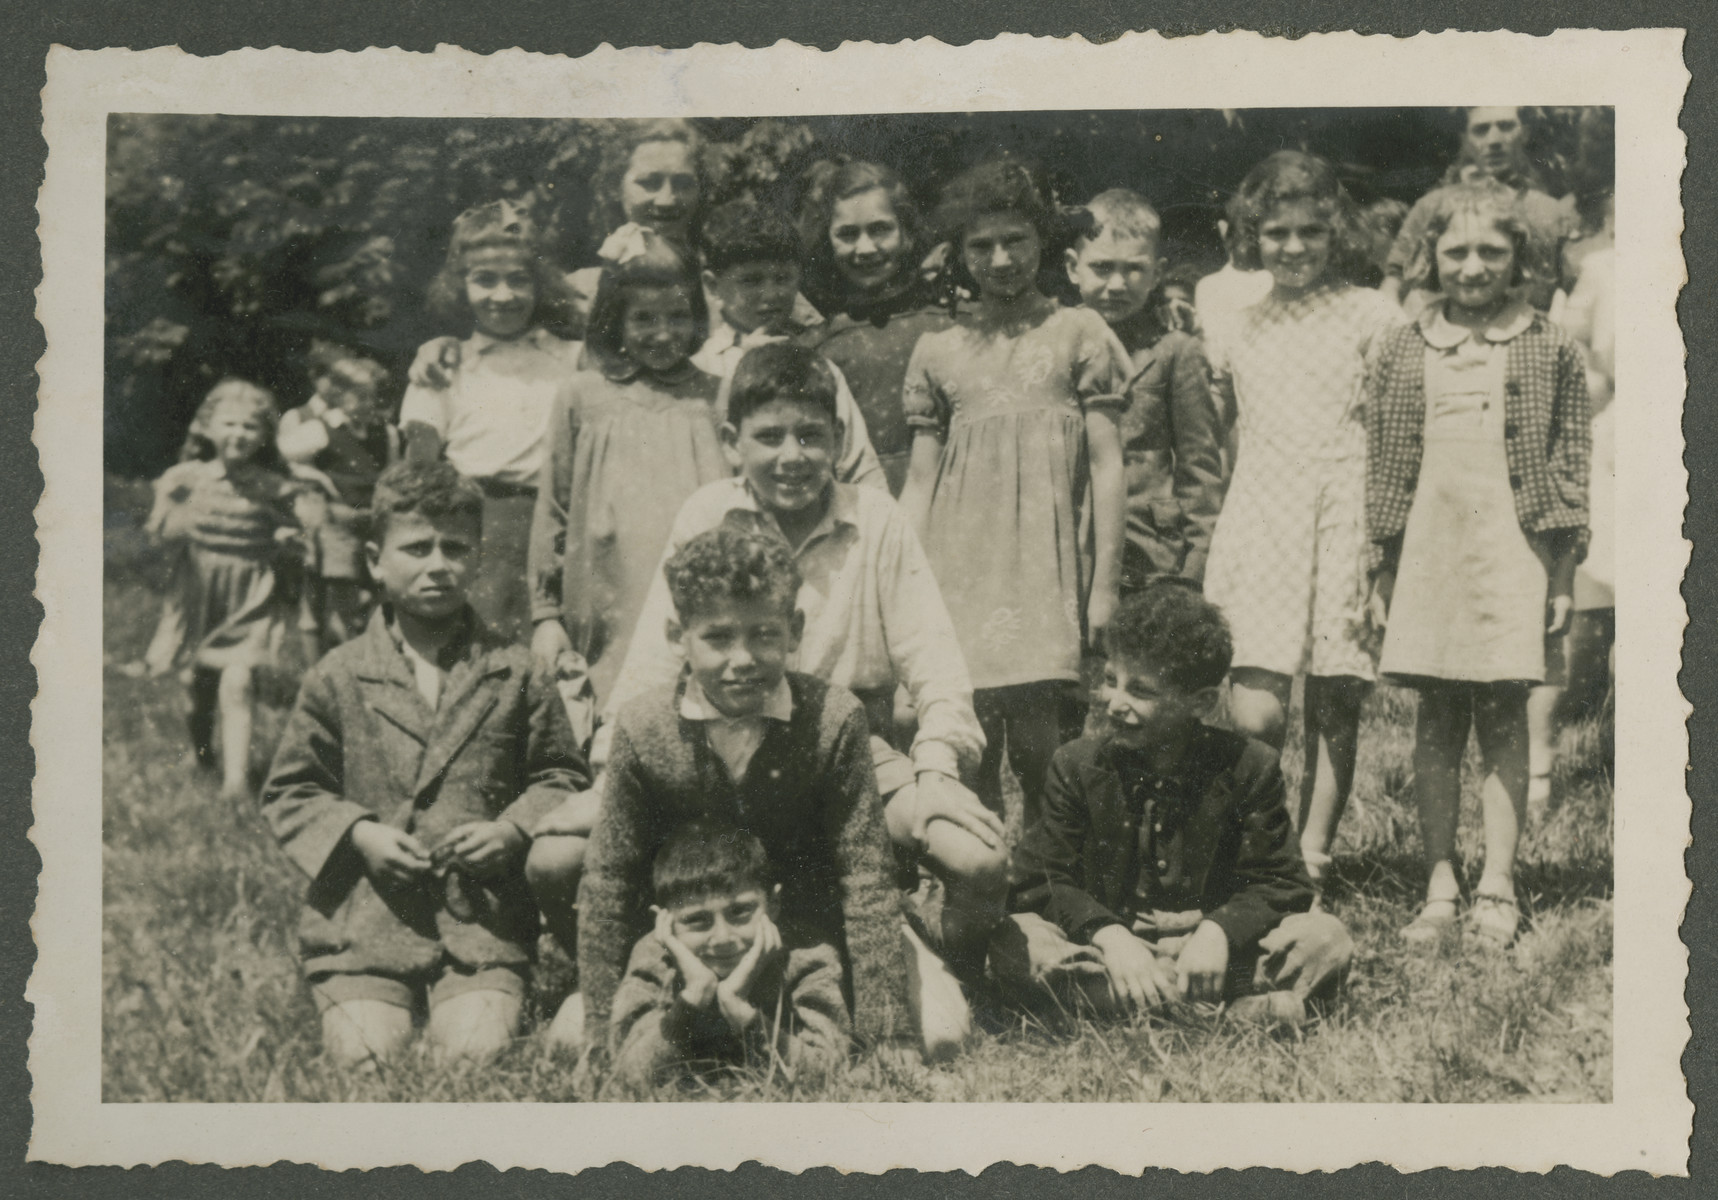 Group portrait of elementary age children in a Zionist children's home in Switzerland.